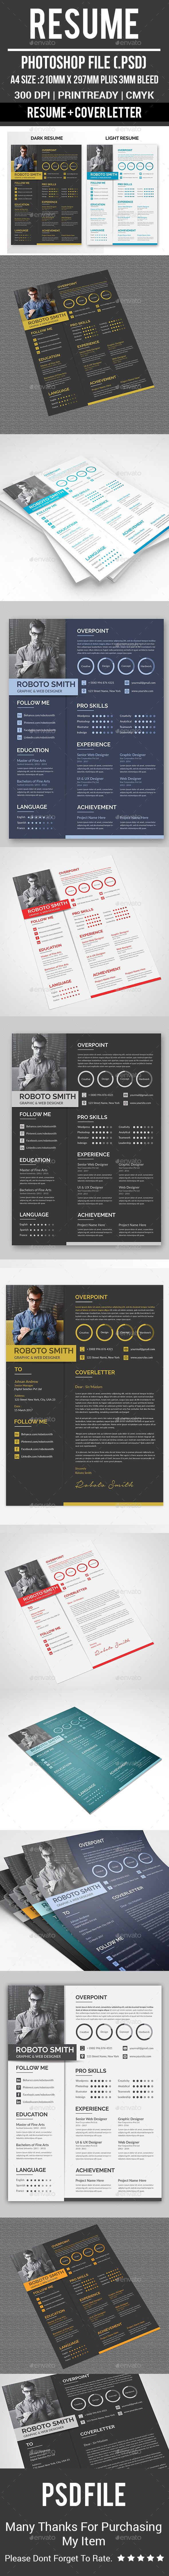 Resume A4 Template PSD 500 best Resumes